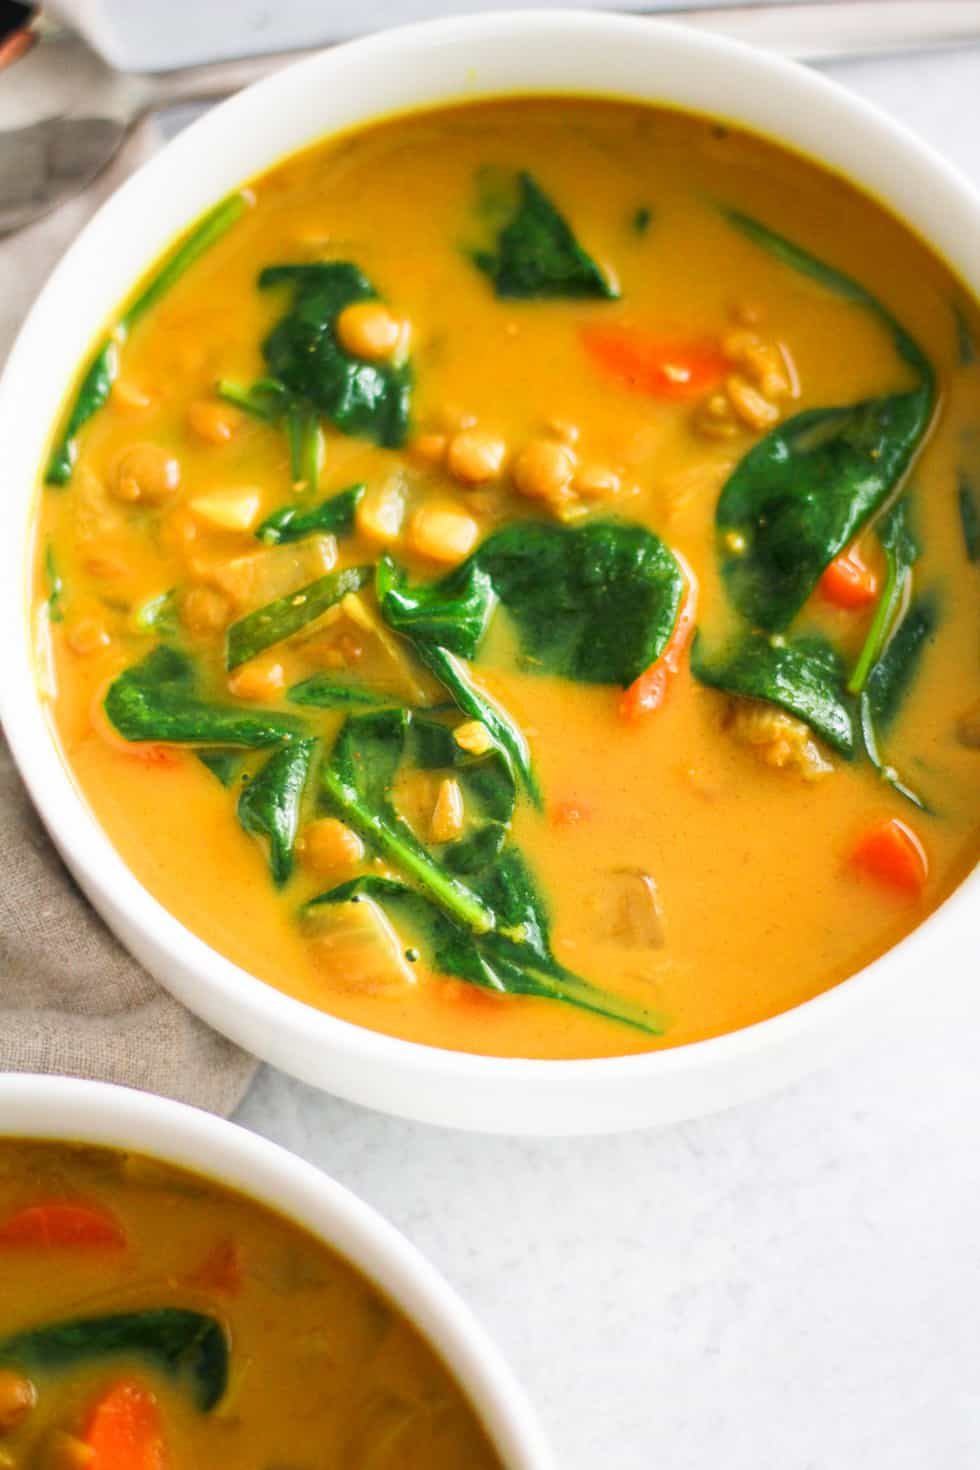 lentils and spinach in a bowl of stew.